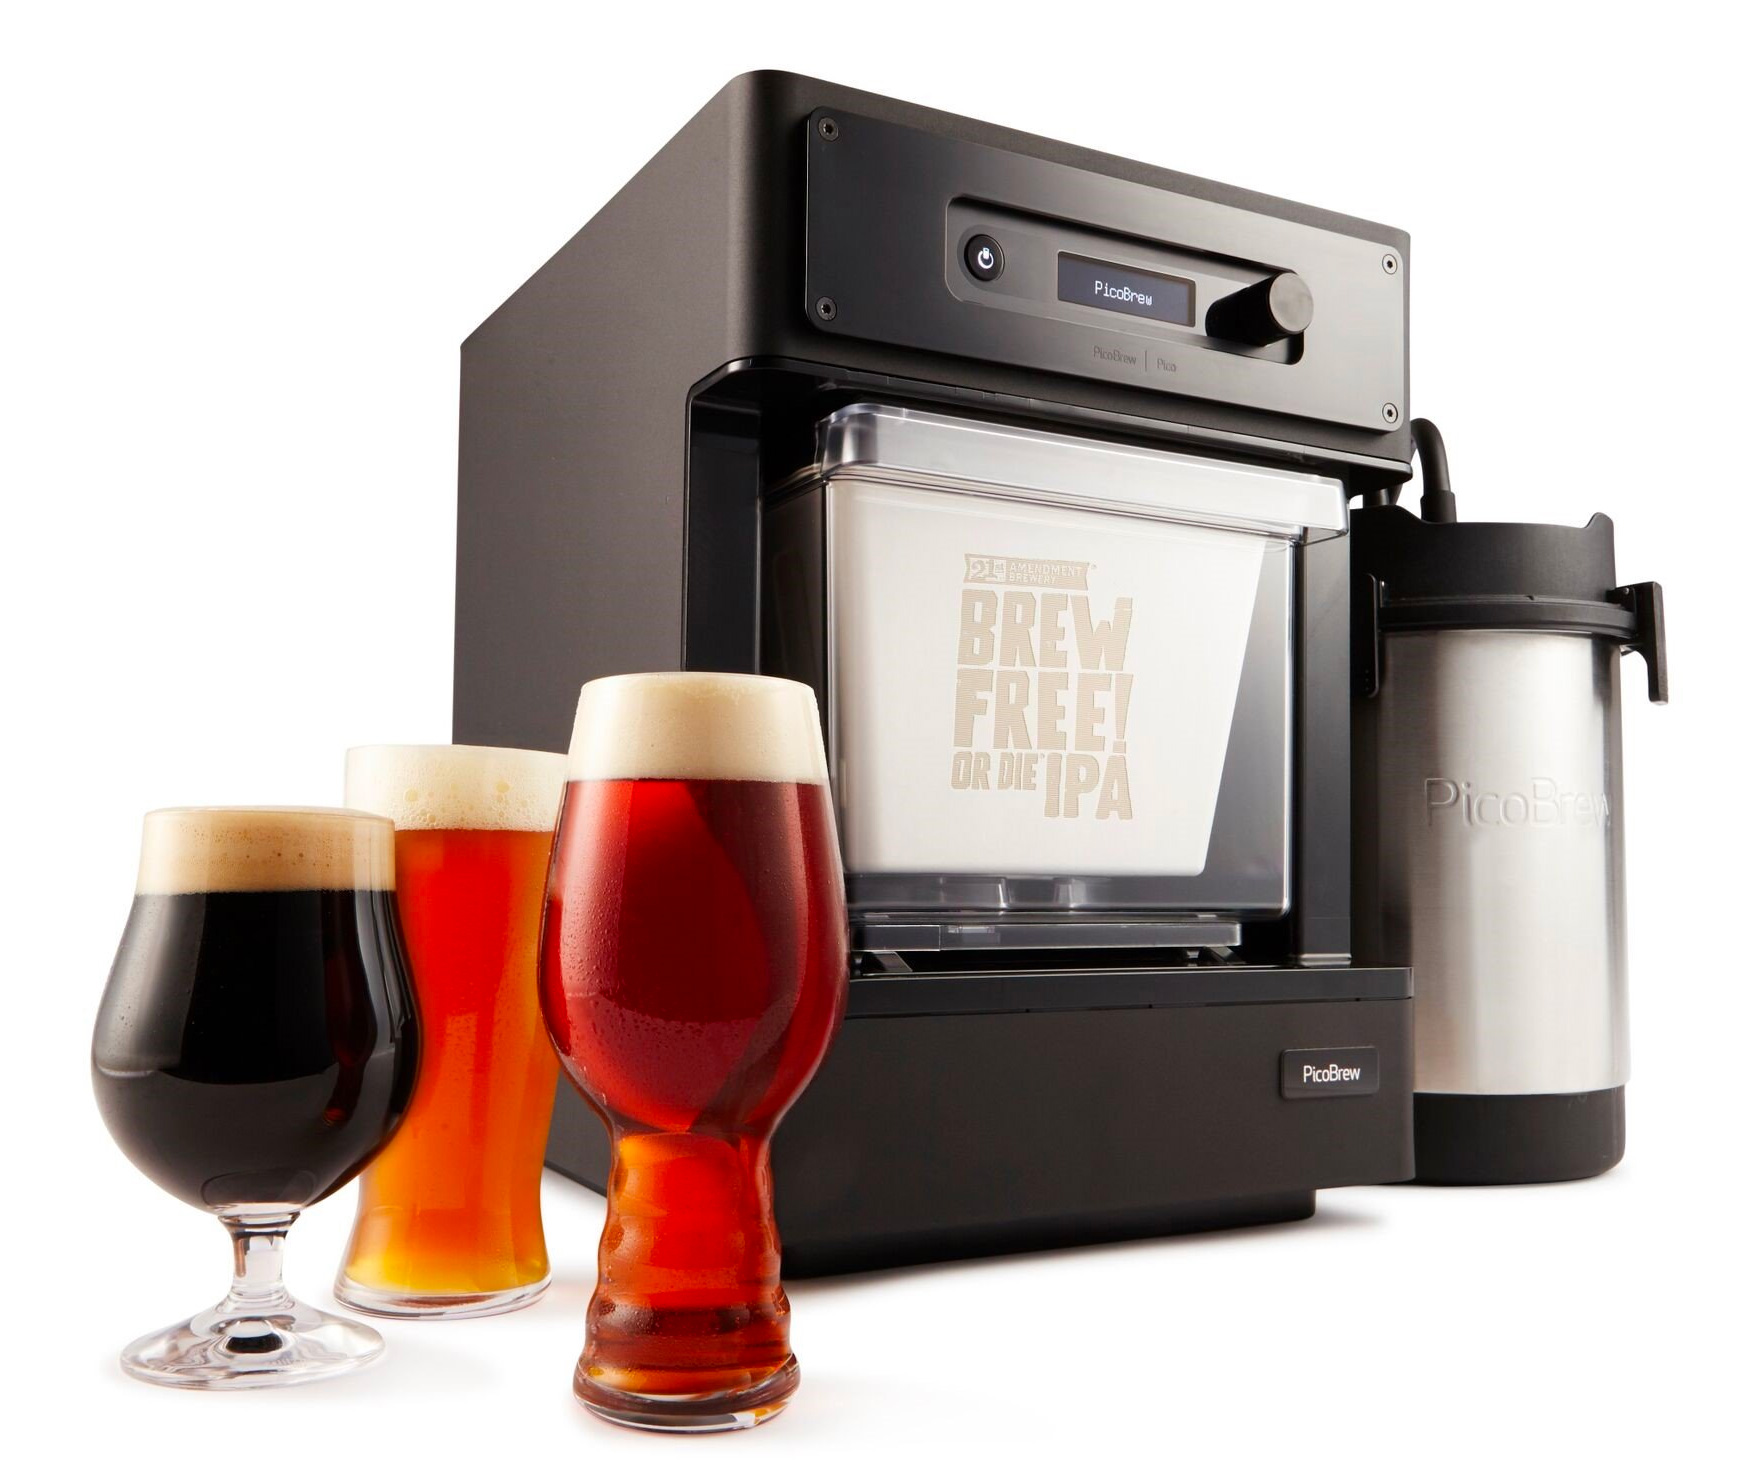 With the Pico C System, Homebrewing is Truly Effortless at werd.com